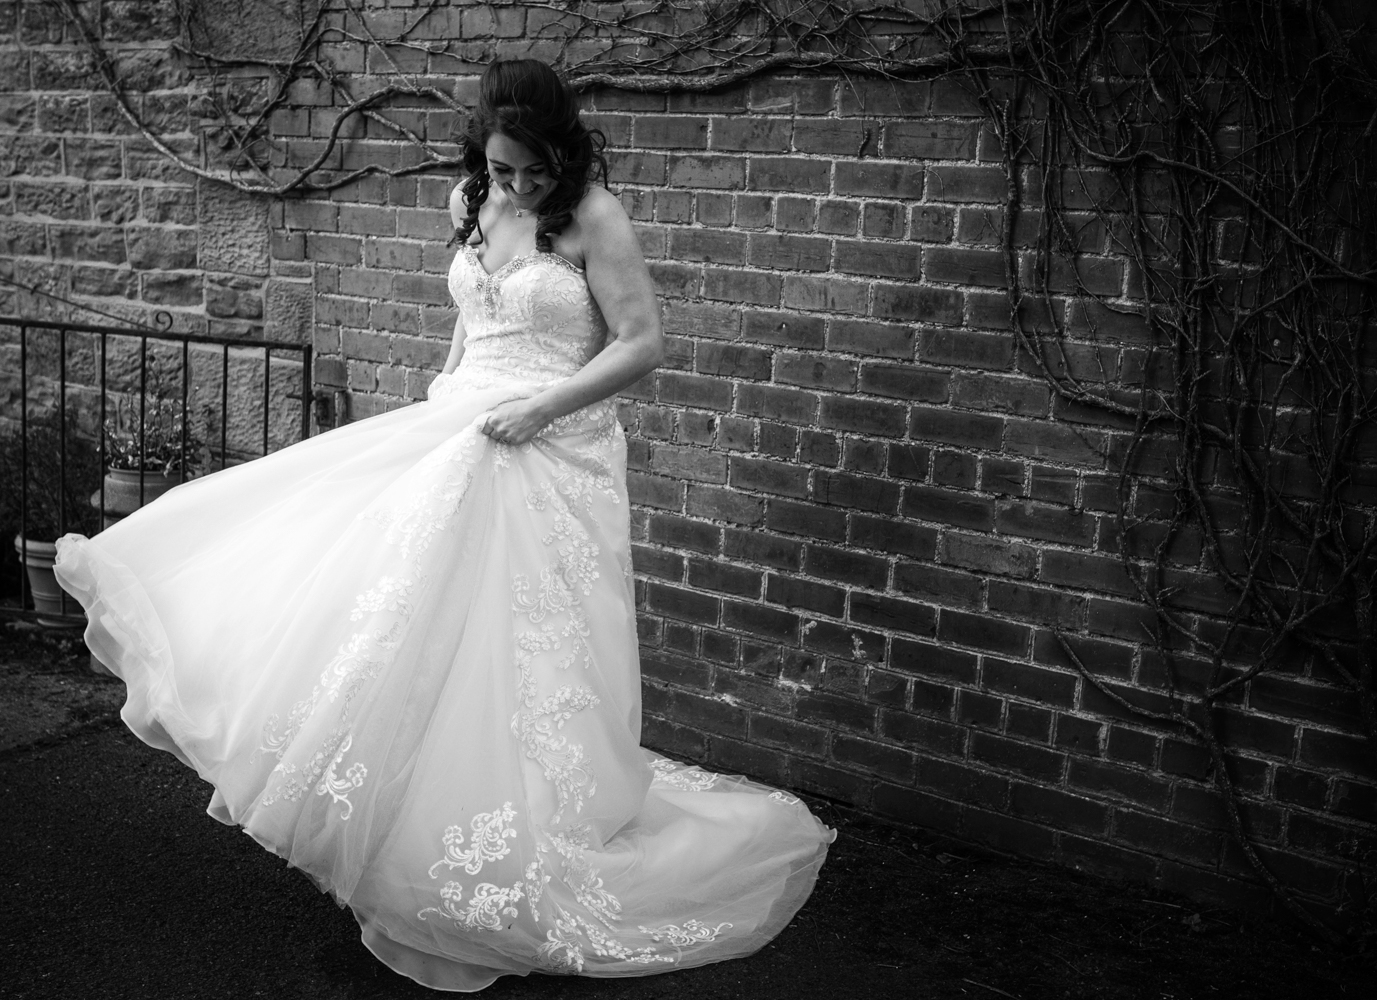 Black and white photo of the bride swirling her wedding dress around